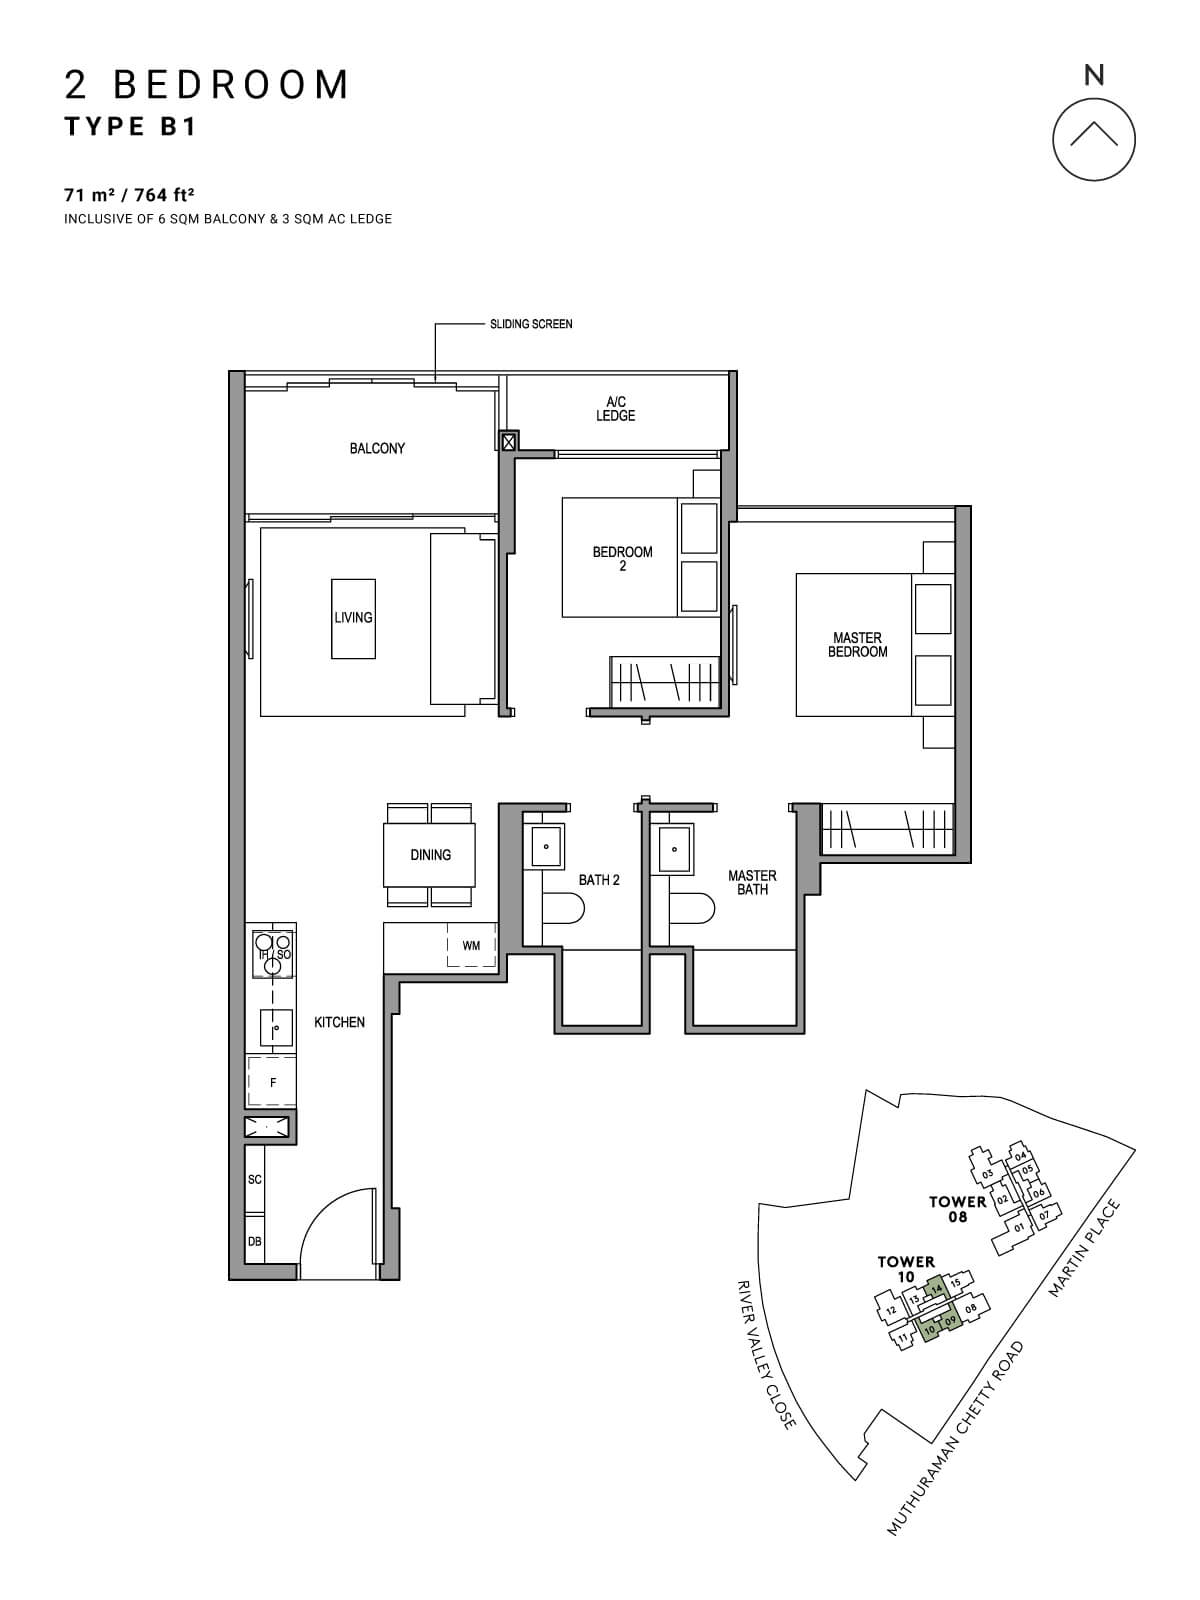 Martin Modern Floor Plan 2 Bedroom Type B1